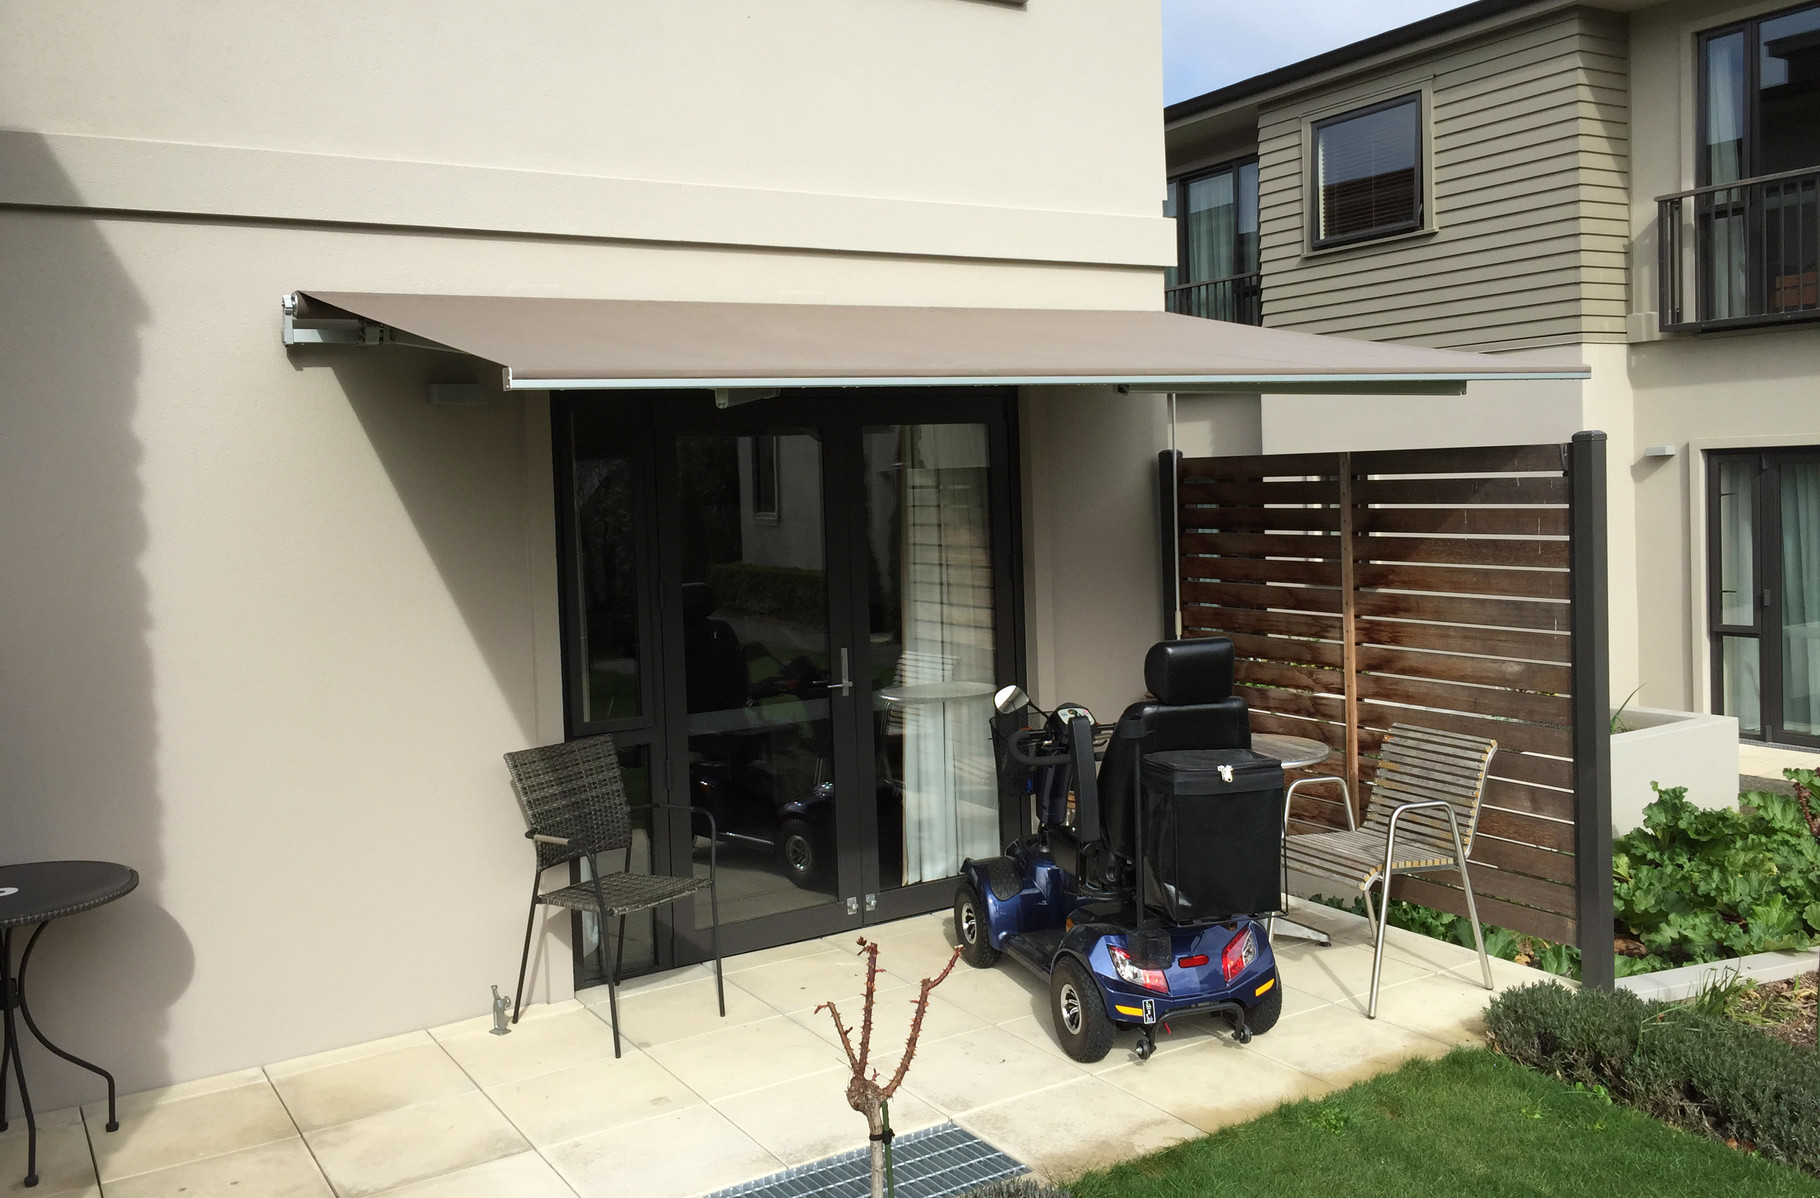 Franciaflex Horizon Retractable Awning, Blenheim, New Zealand